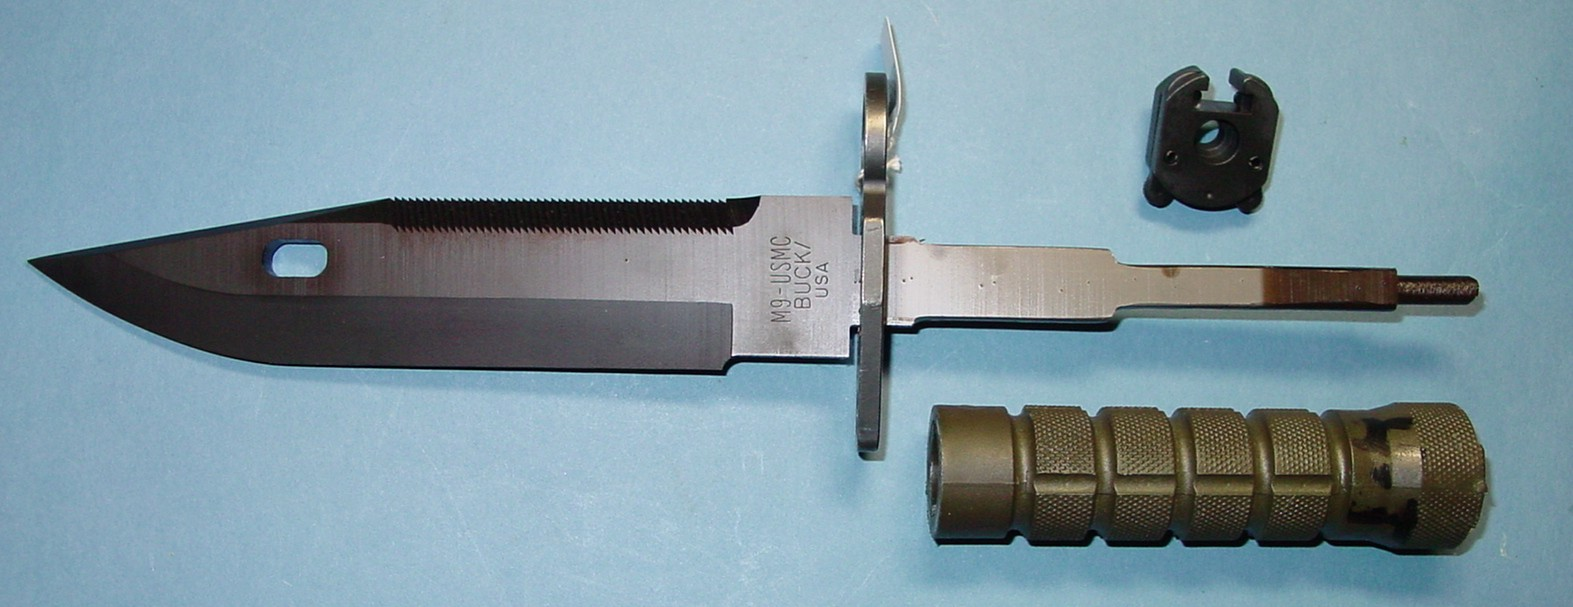 Welcome To The World Of Weapons M9 Bayonet